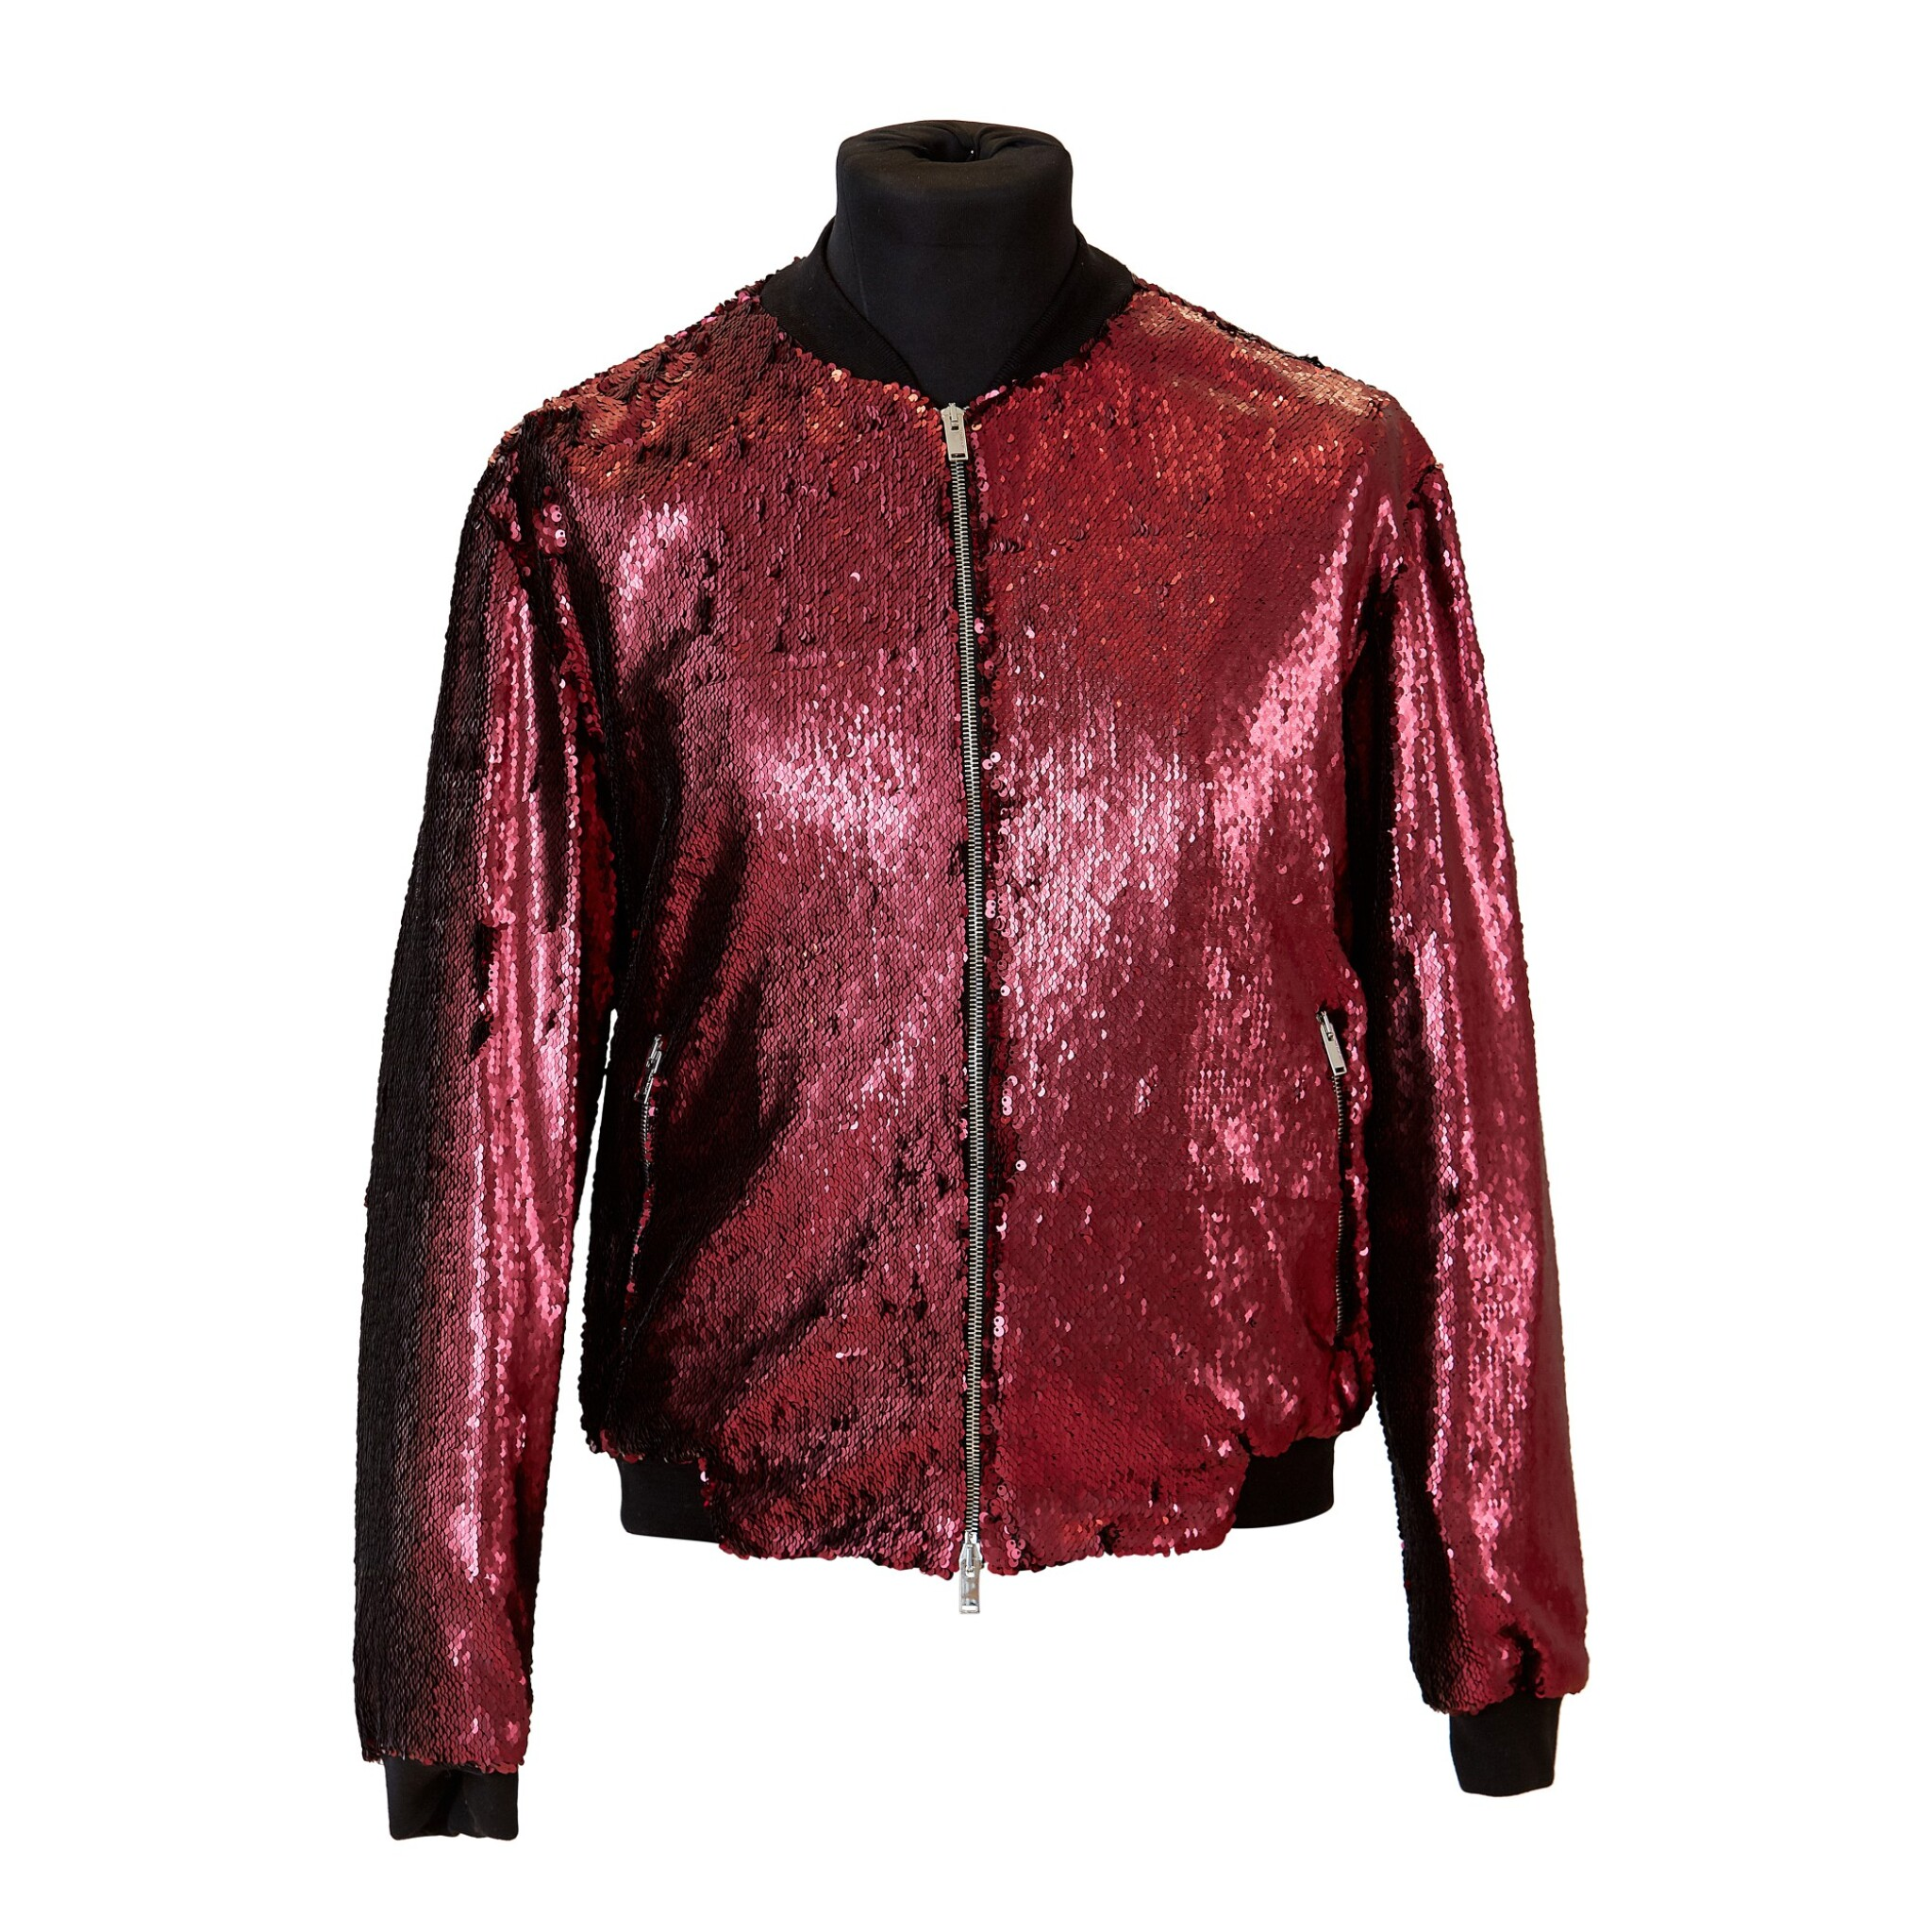 View full screen - View 1 of Lot 9. Mick Jagger's 'No Filter' European Tour Red Sequin Jacket, 2017.